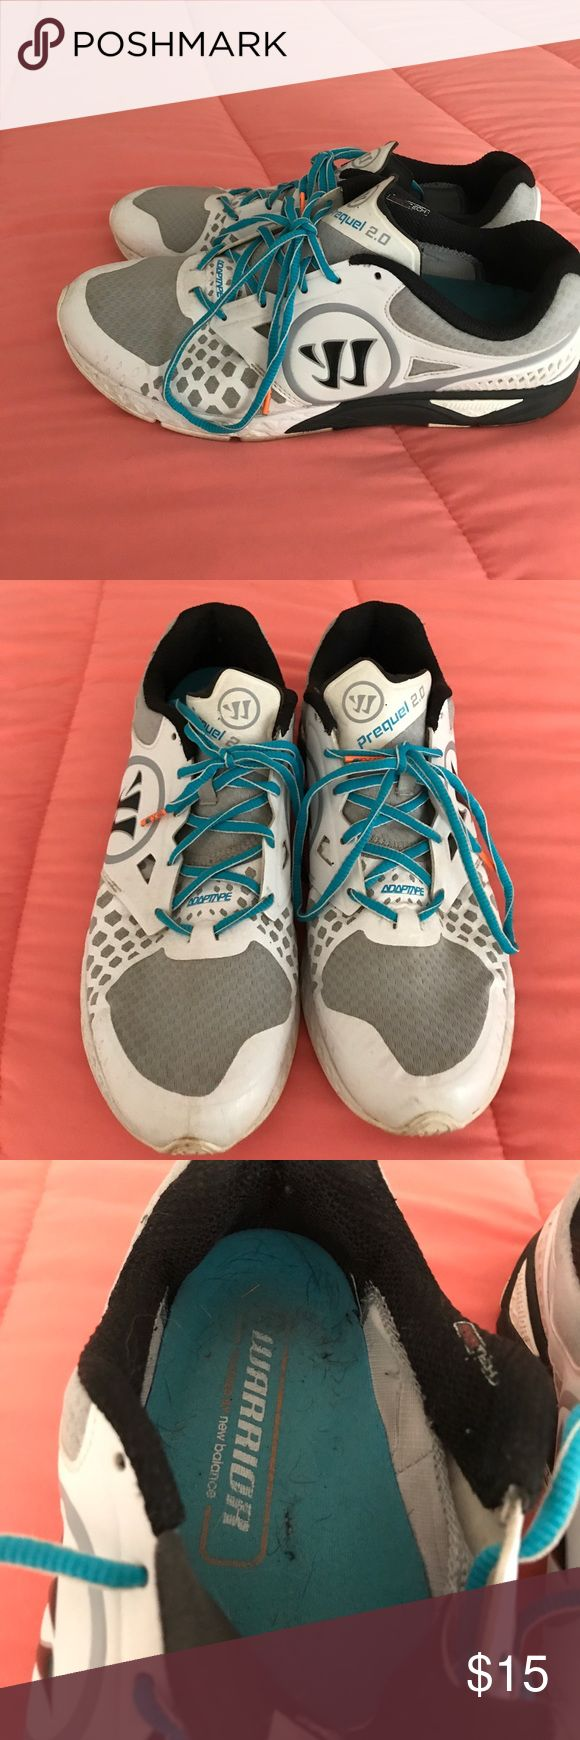 17 best ideas about cleaning tennis shoes on